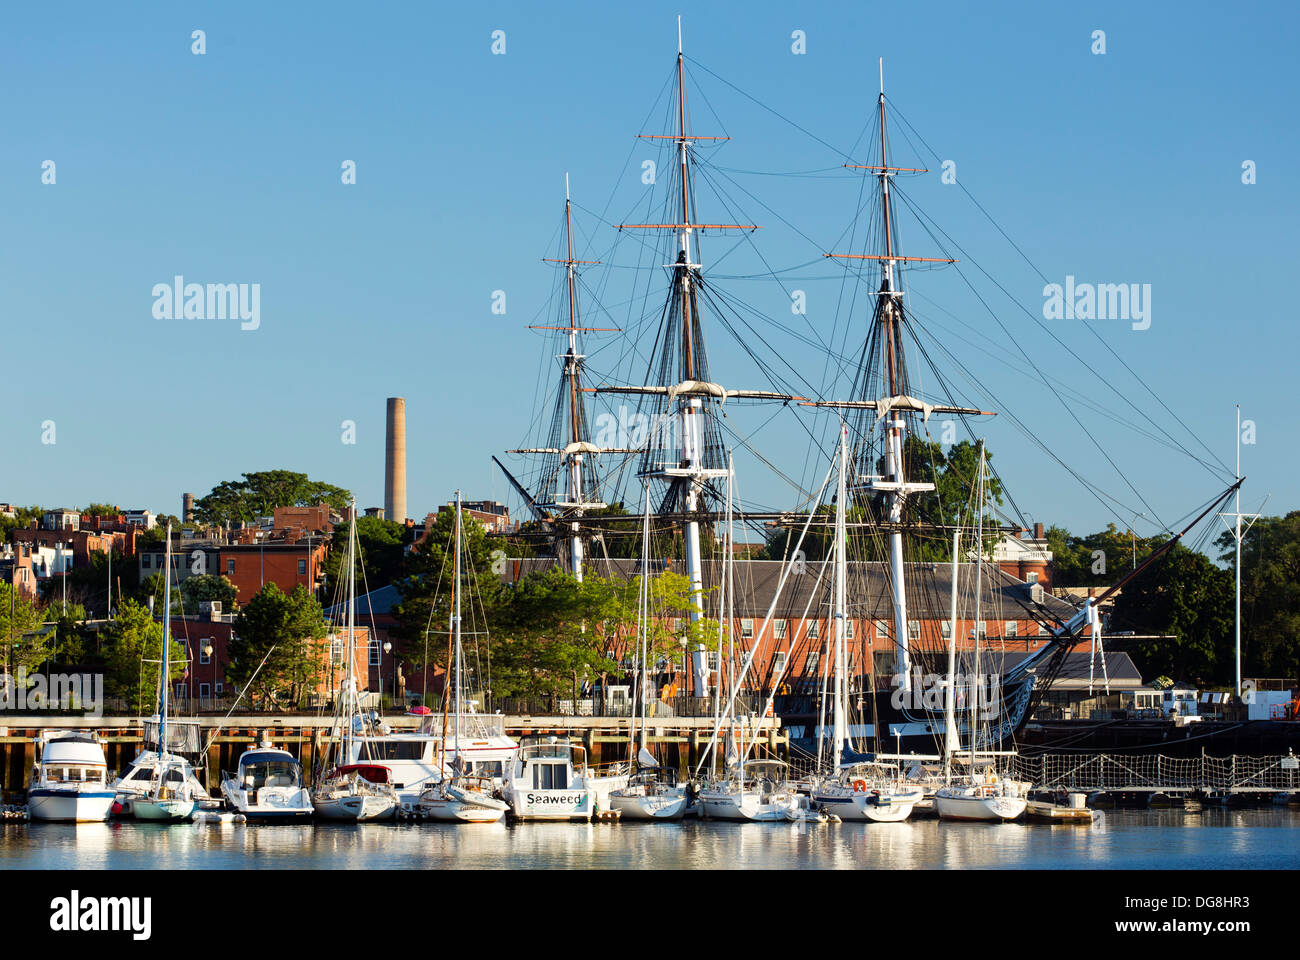 USS Constitution ('Old Ironsides'), Charlestown Naval Yard, Boston National Historical Park, Boston, Massachusetts USA - Stock Image